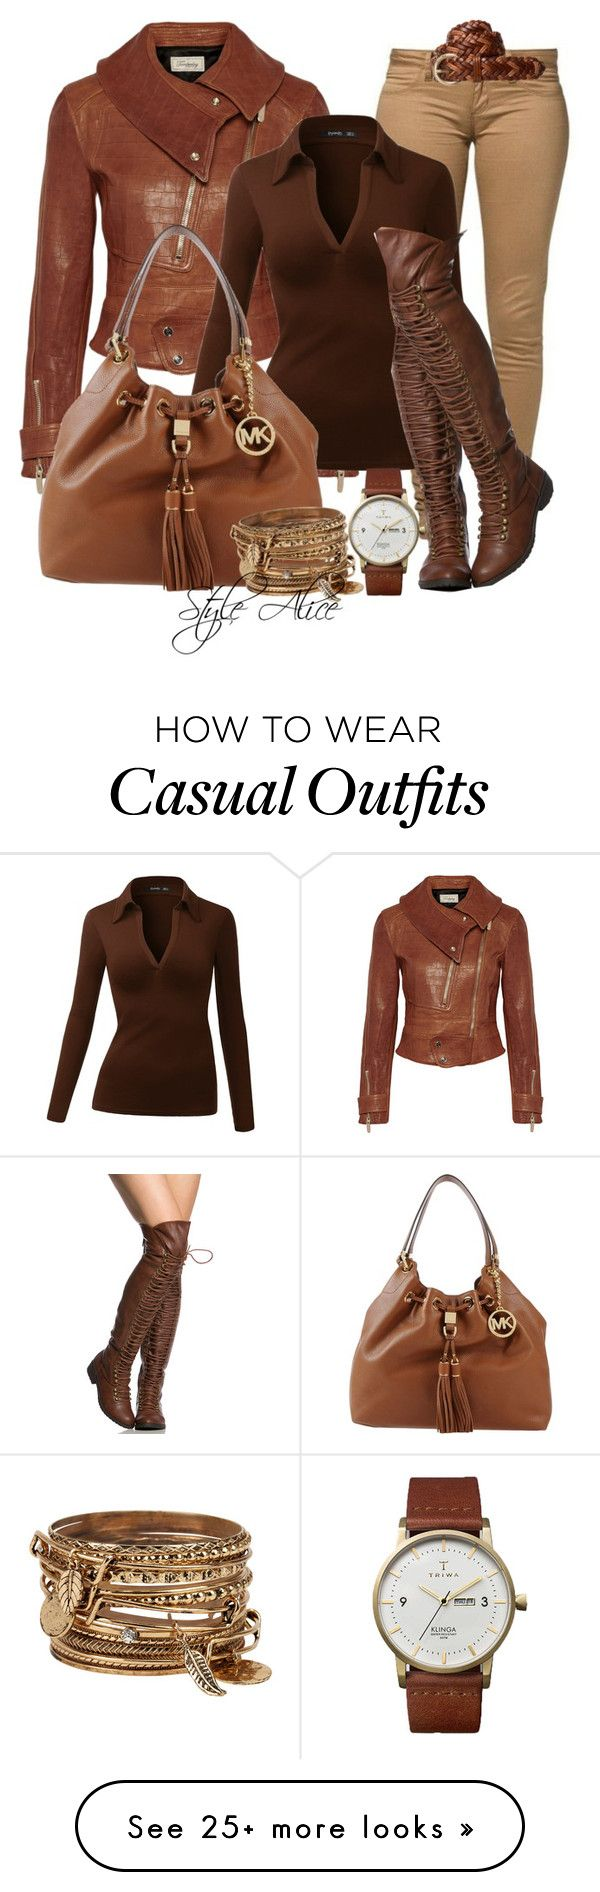 """Casual"" by alice-fortuna on Polyvore featuring Temperley London, MICHAEL Michael Kors, Triwa and ALDO"